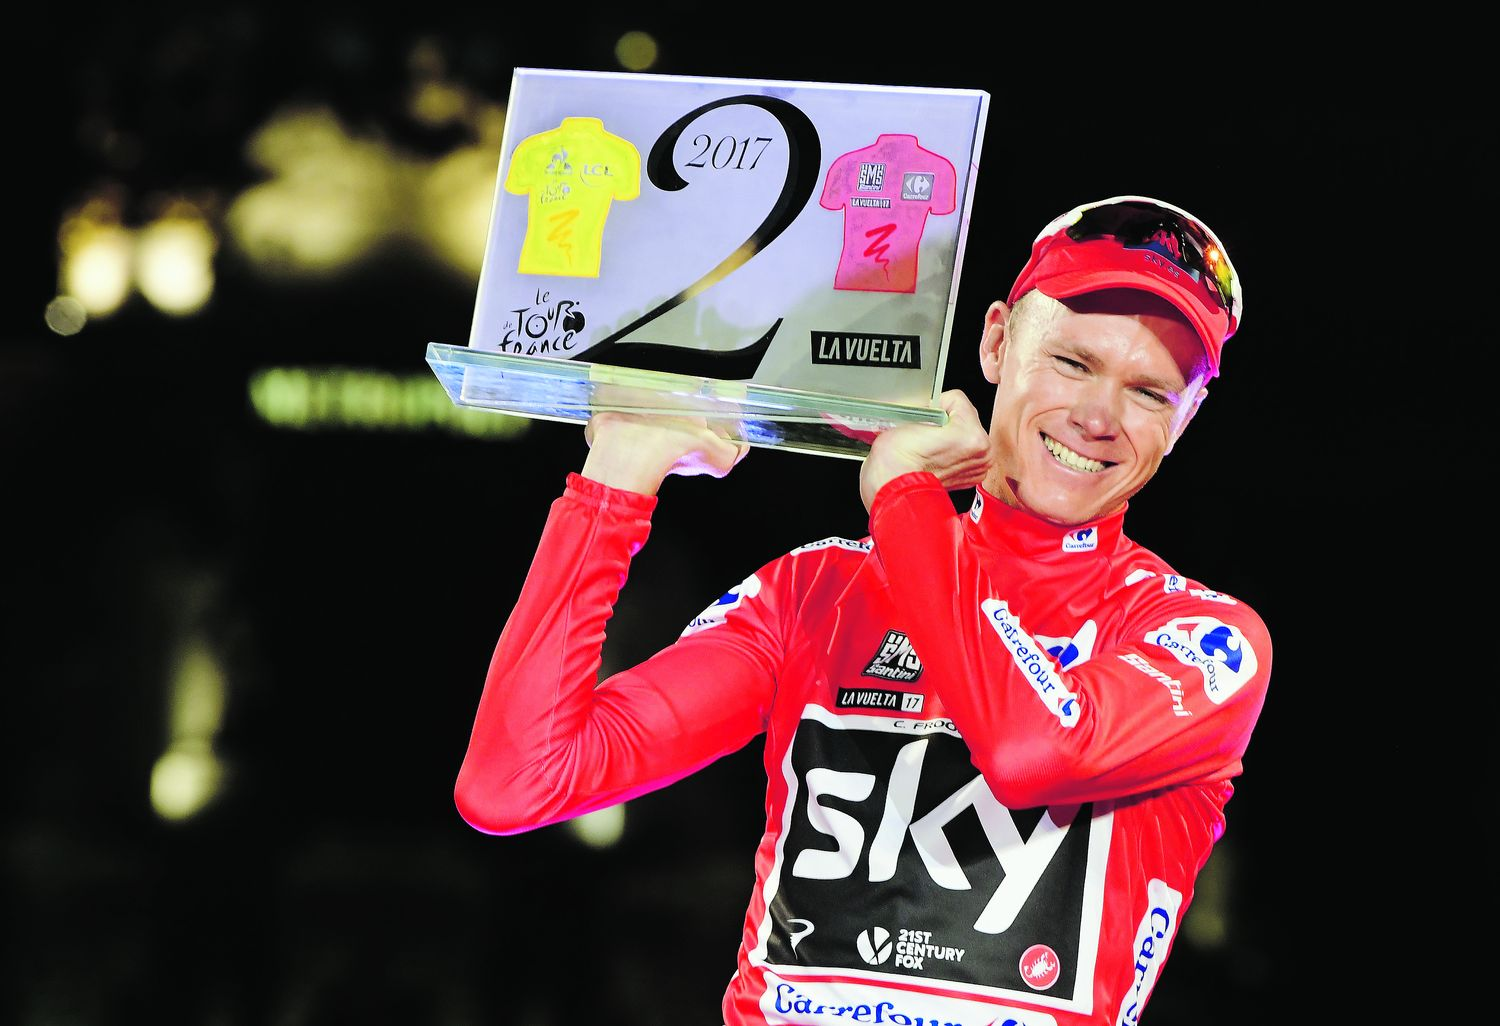 Cyclisme - Froome peut-il tomber comme Armstrong ?